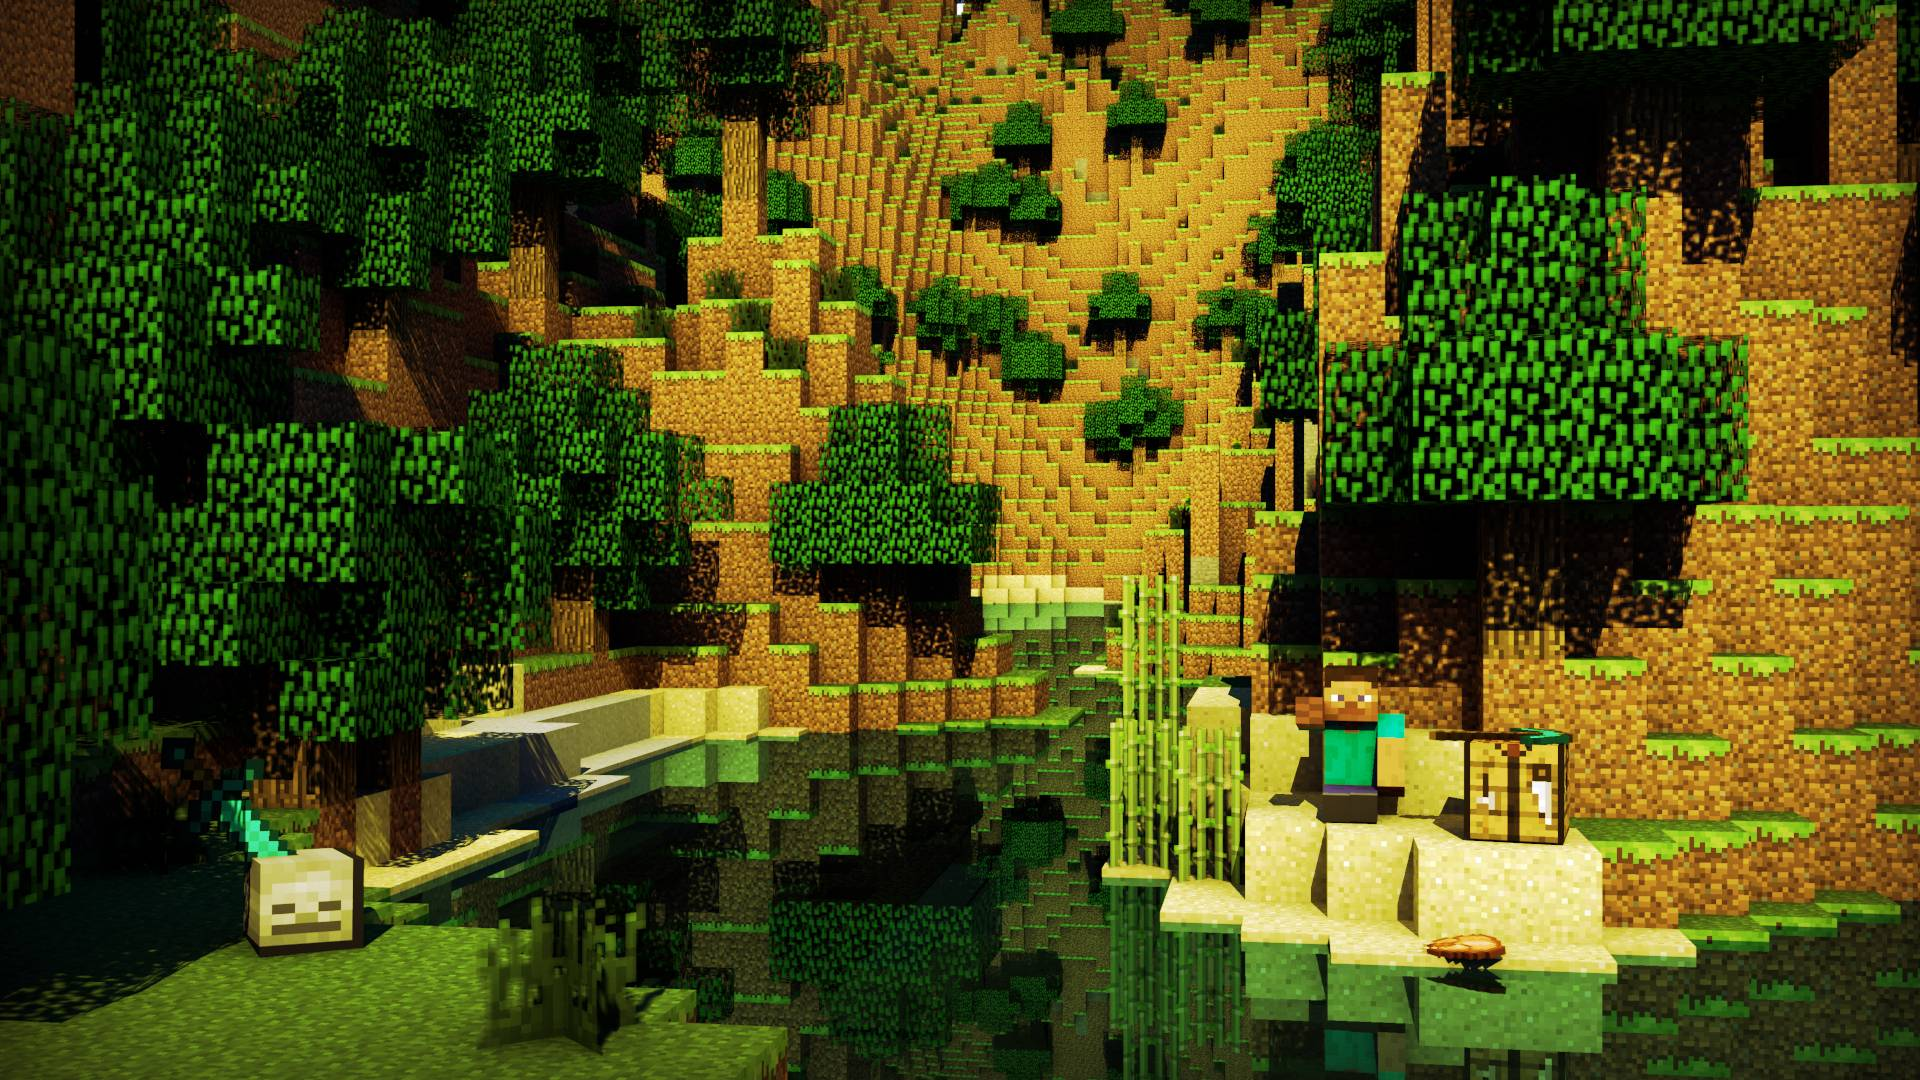 Minecraft Wallpapers Hd Wallpaper Cave